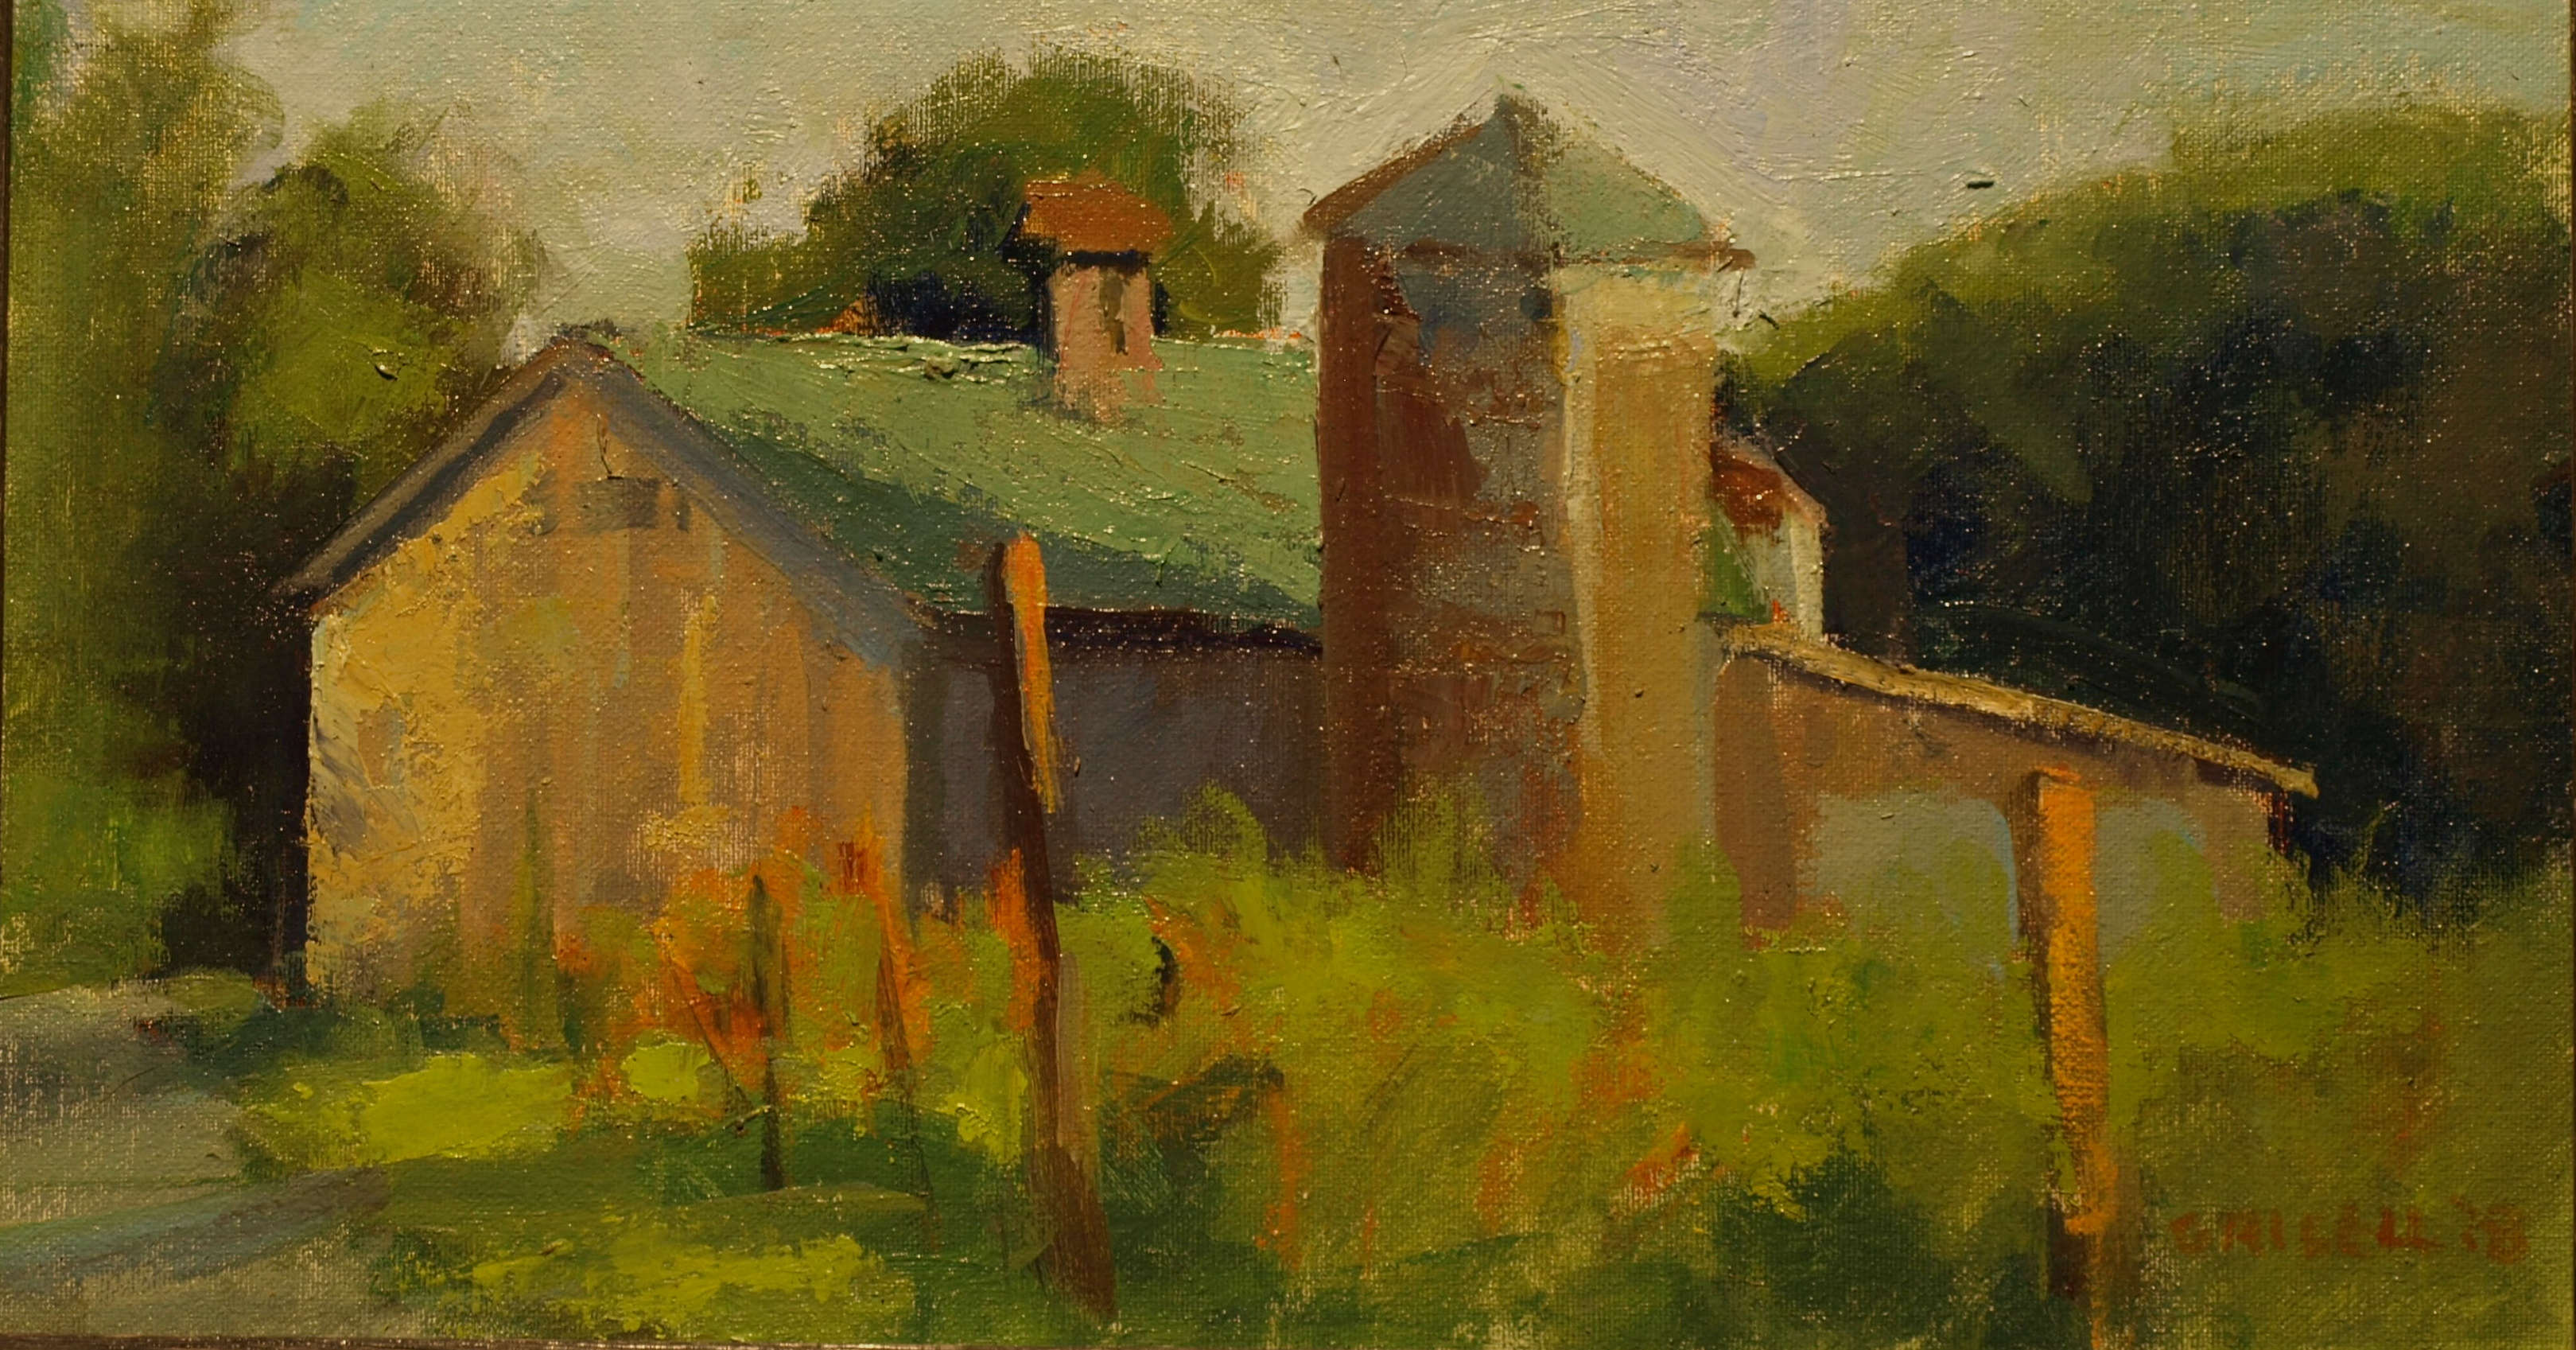 Kent Hollow Barn, Oil on Canvas on Panel, 9 x 16 Inches, by Susan Grisell, $250